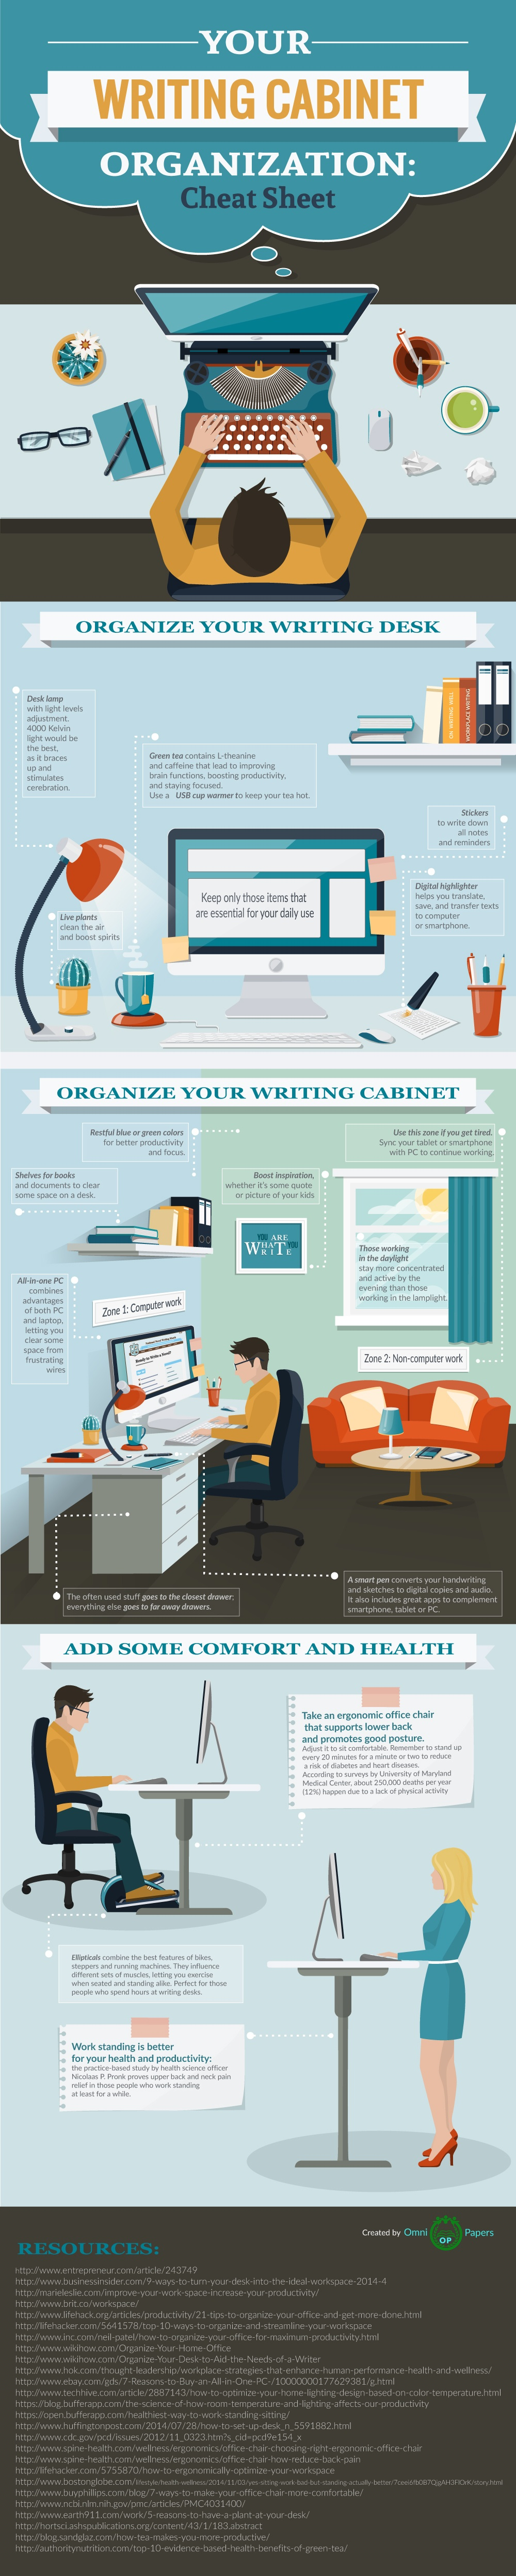 How to Organize Your Workplace for Better Productivity Infographic